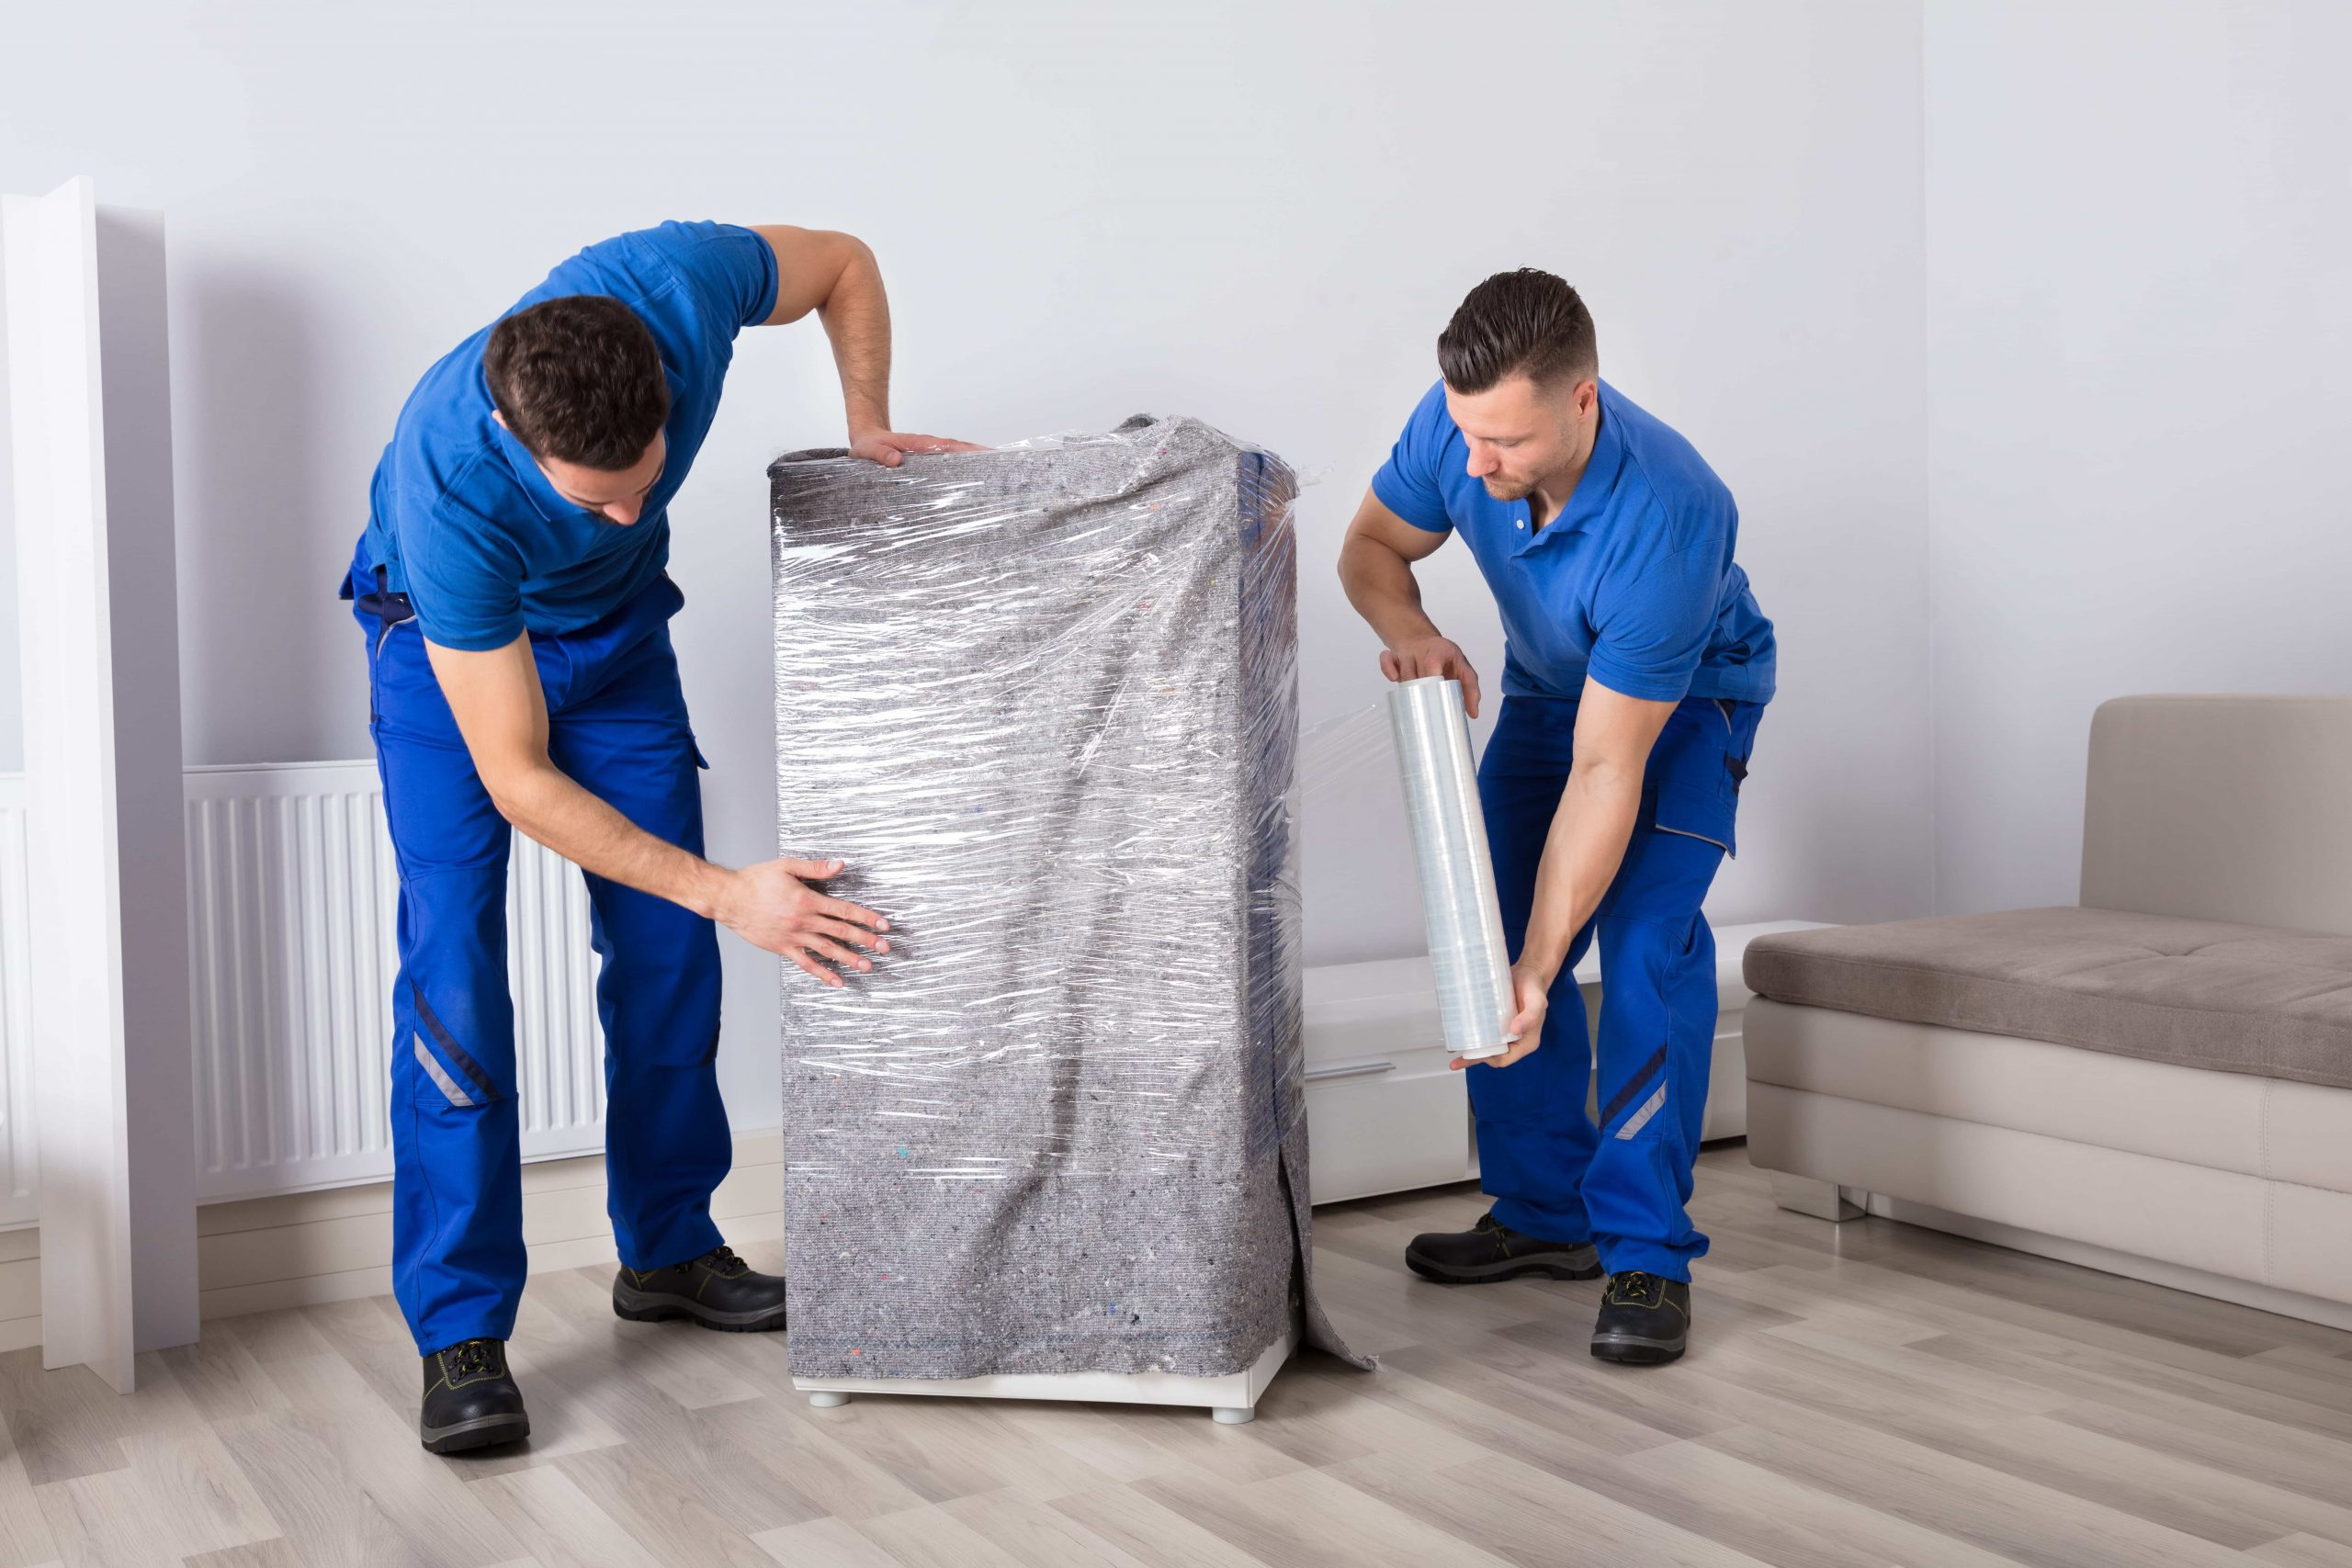 Careful Hands Movers Packing And Unpacking Service